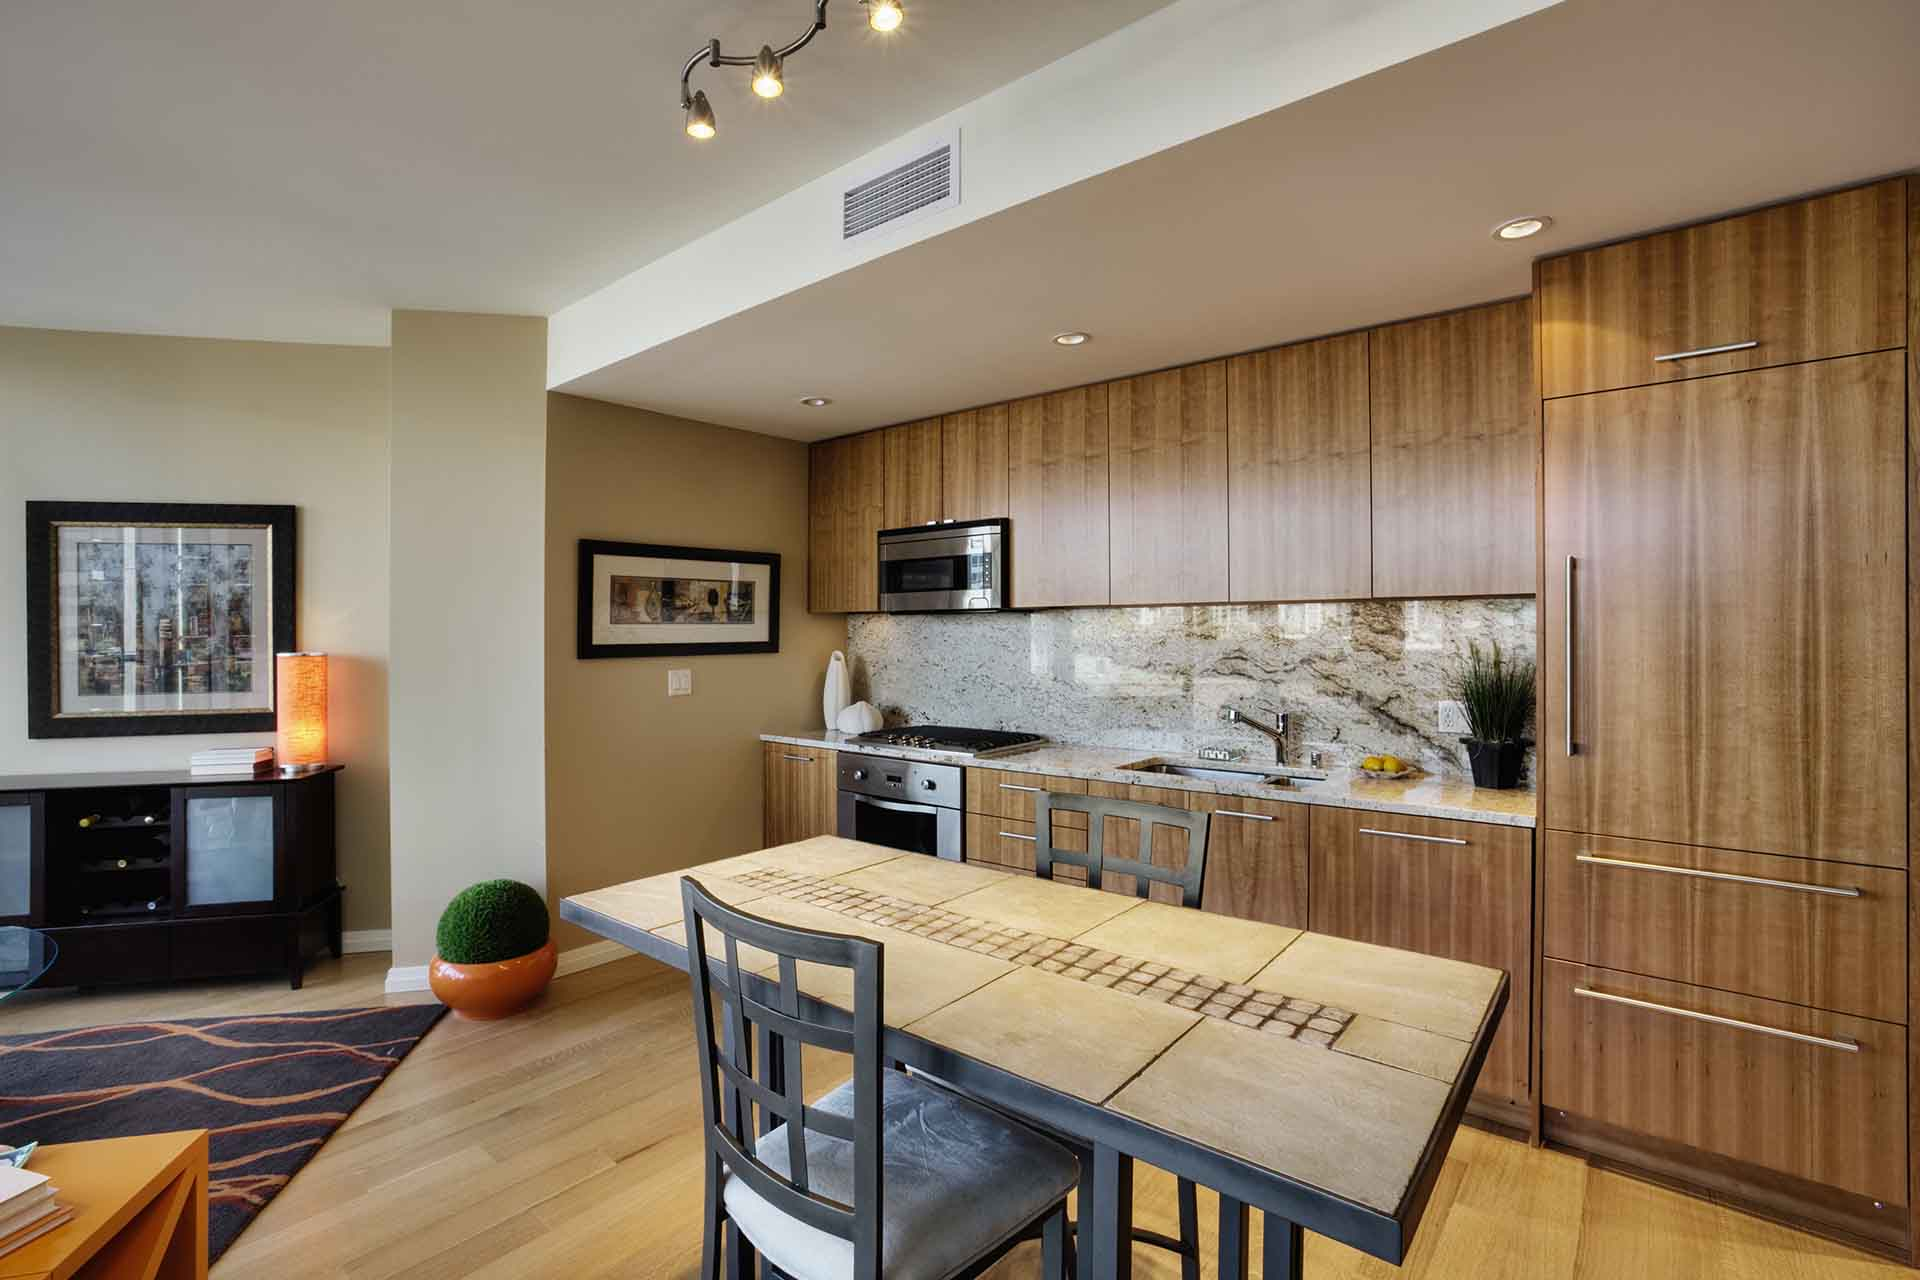 What Can You Renovate in A Condo?